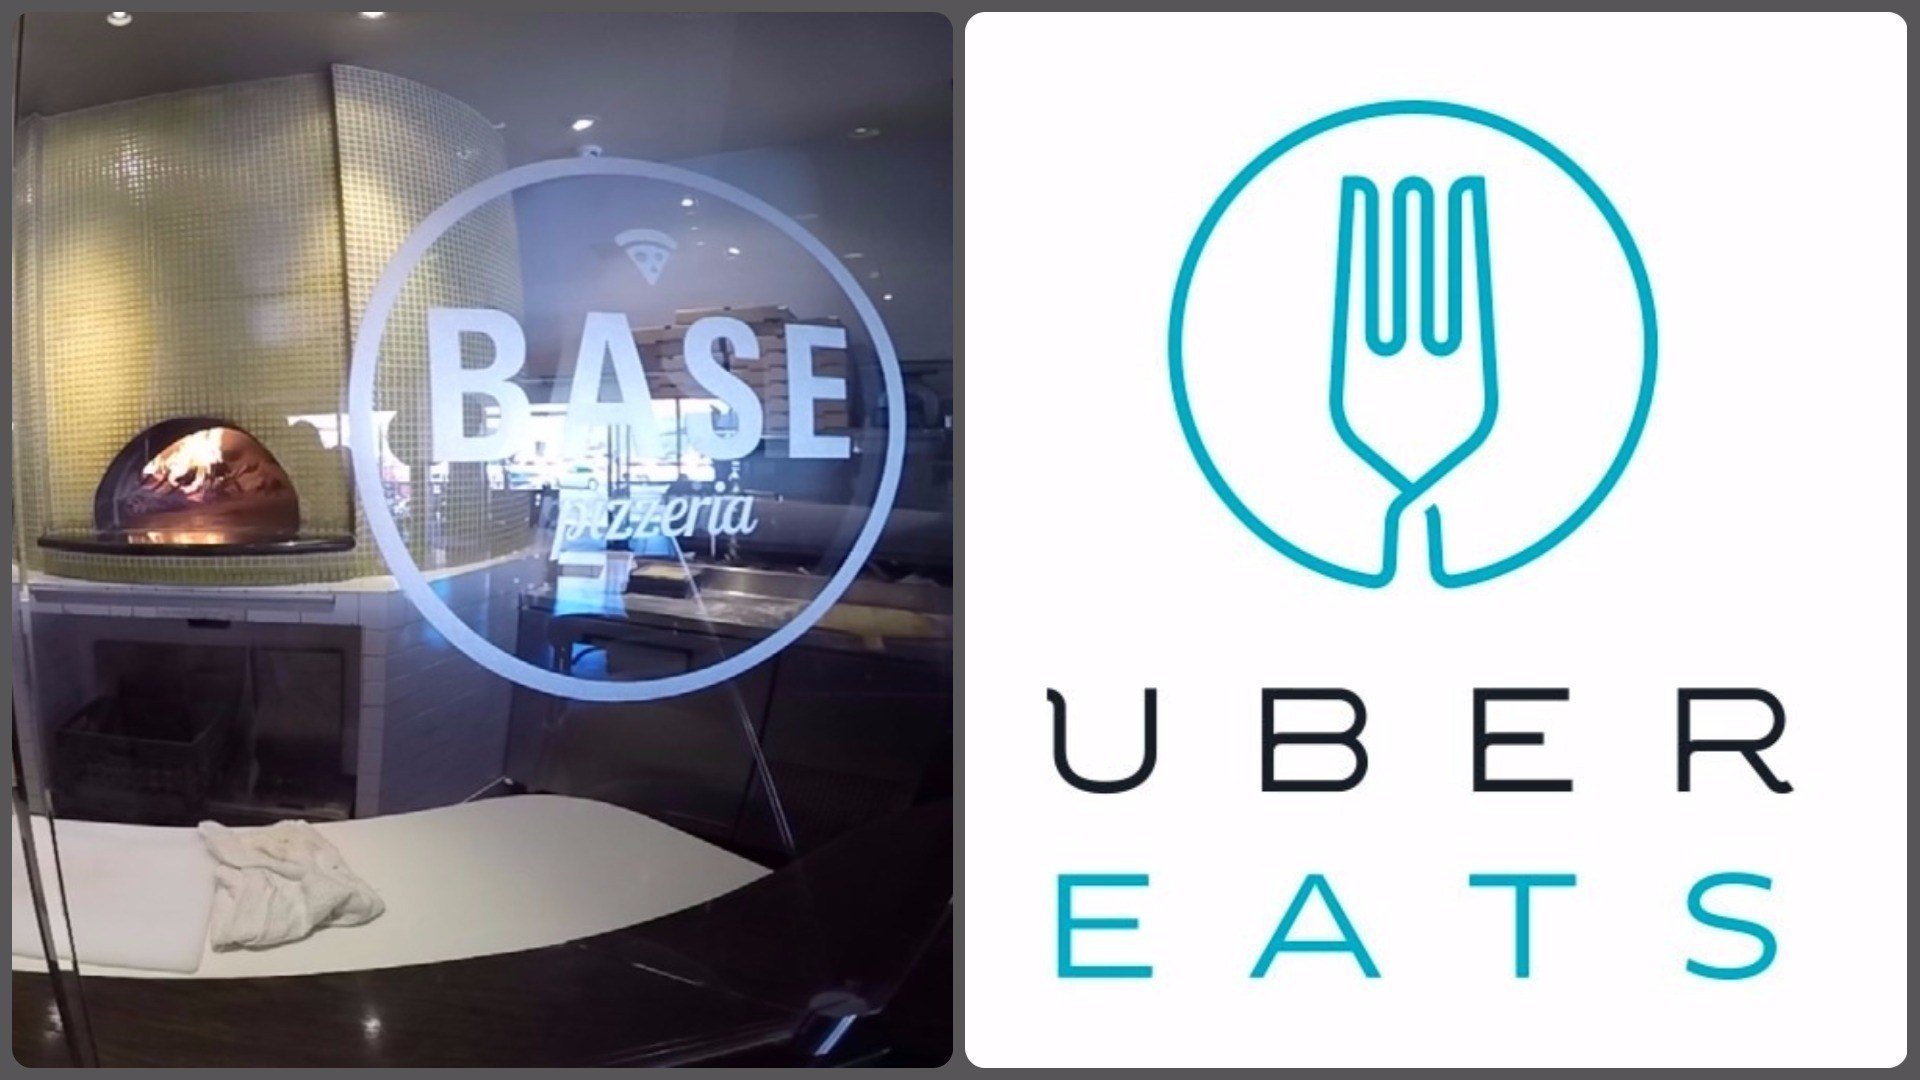 '[With Uber Eats], you don't have to drive by that strip mall to see [Base Pizzeria]; you can order food.'